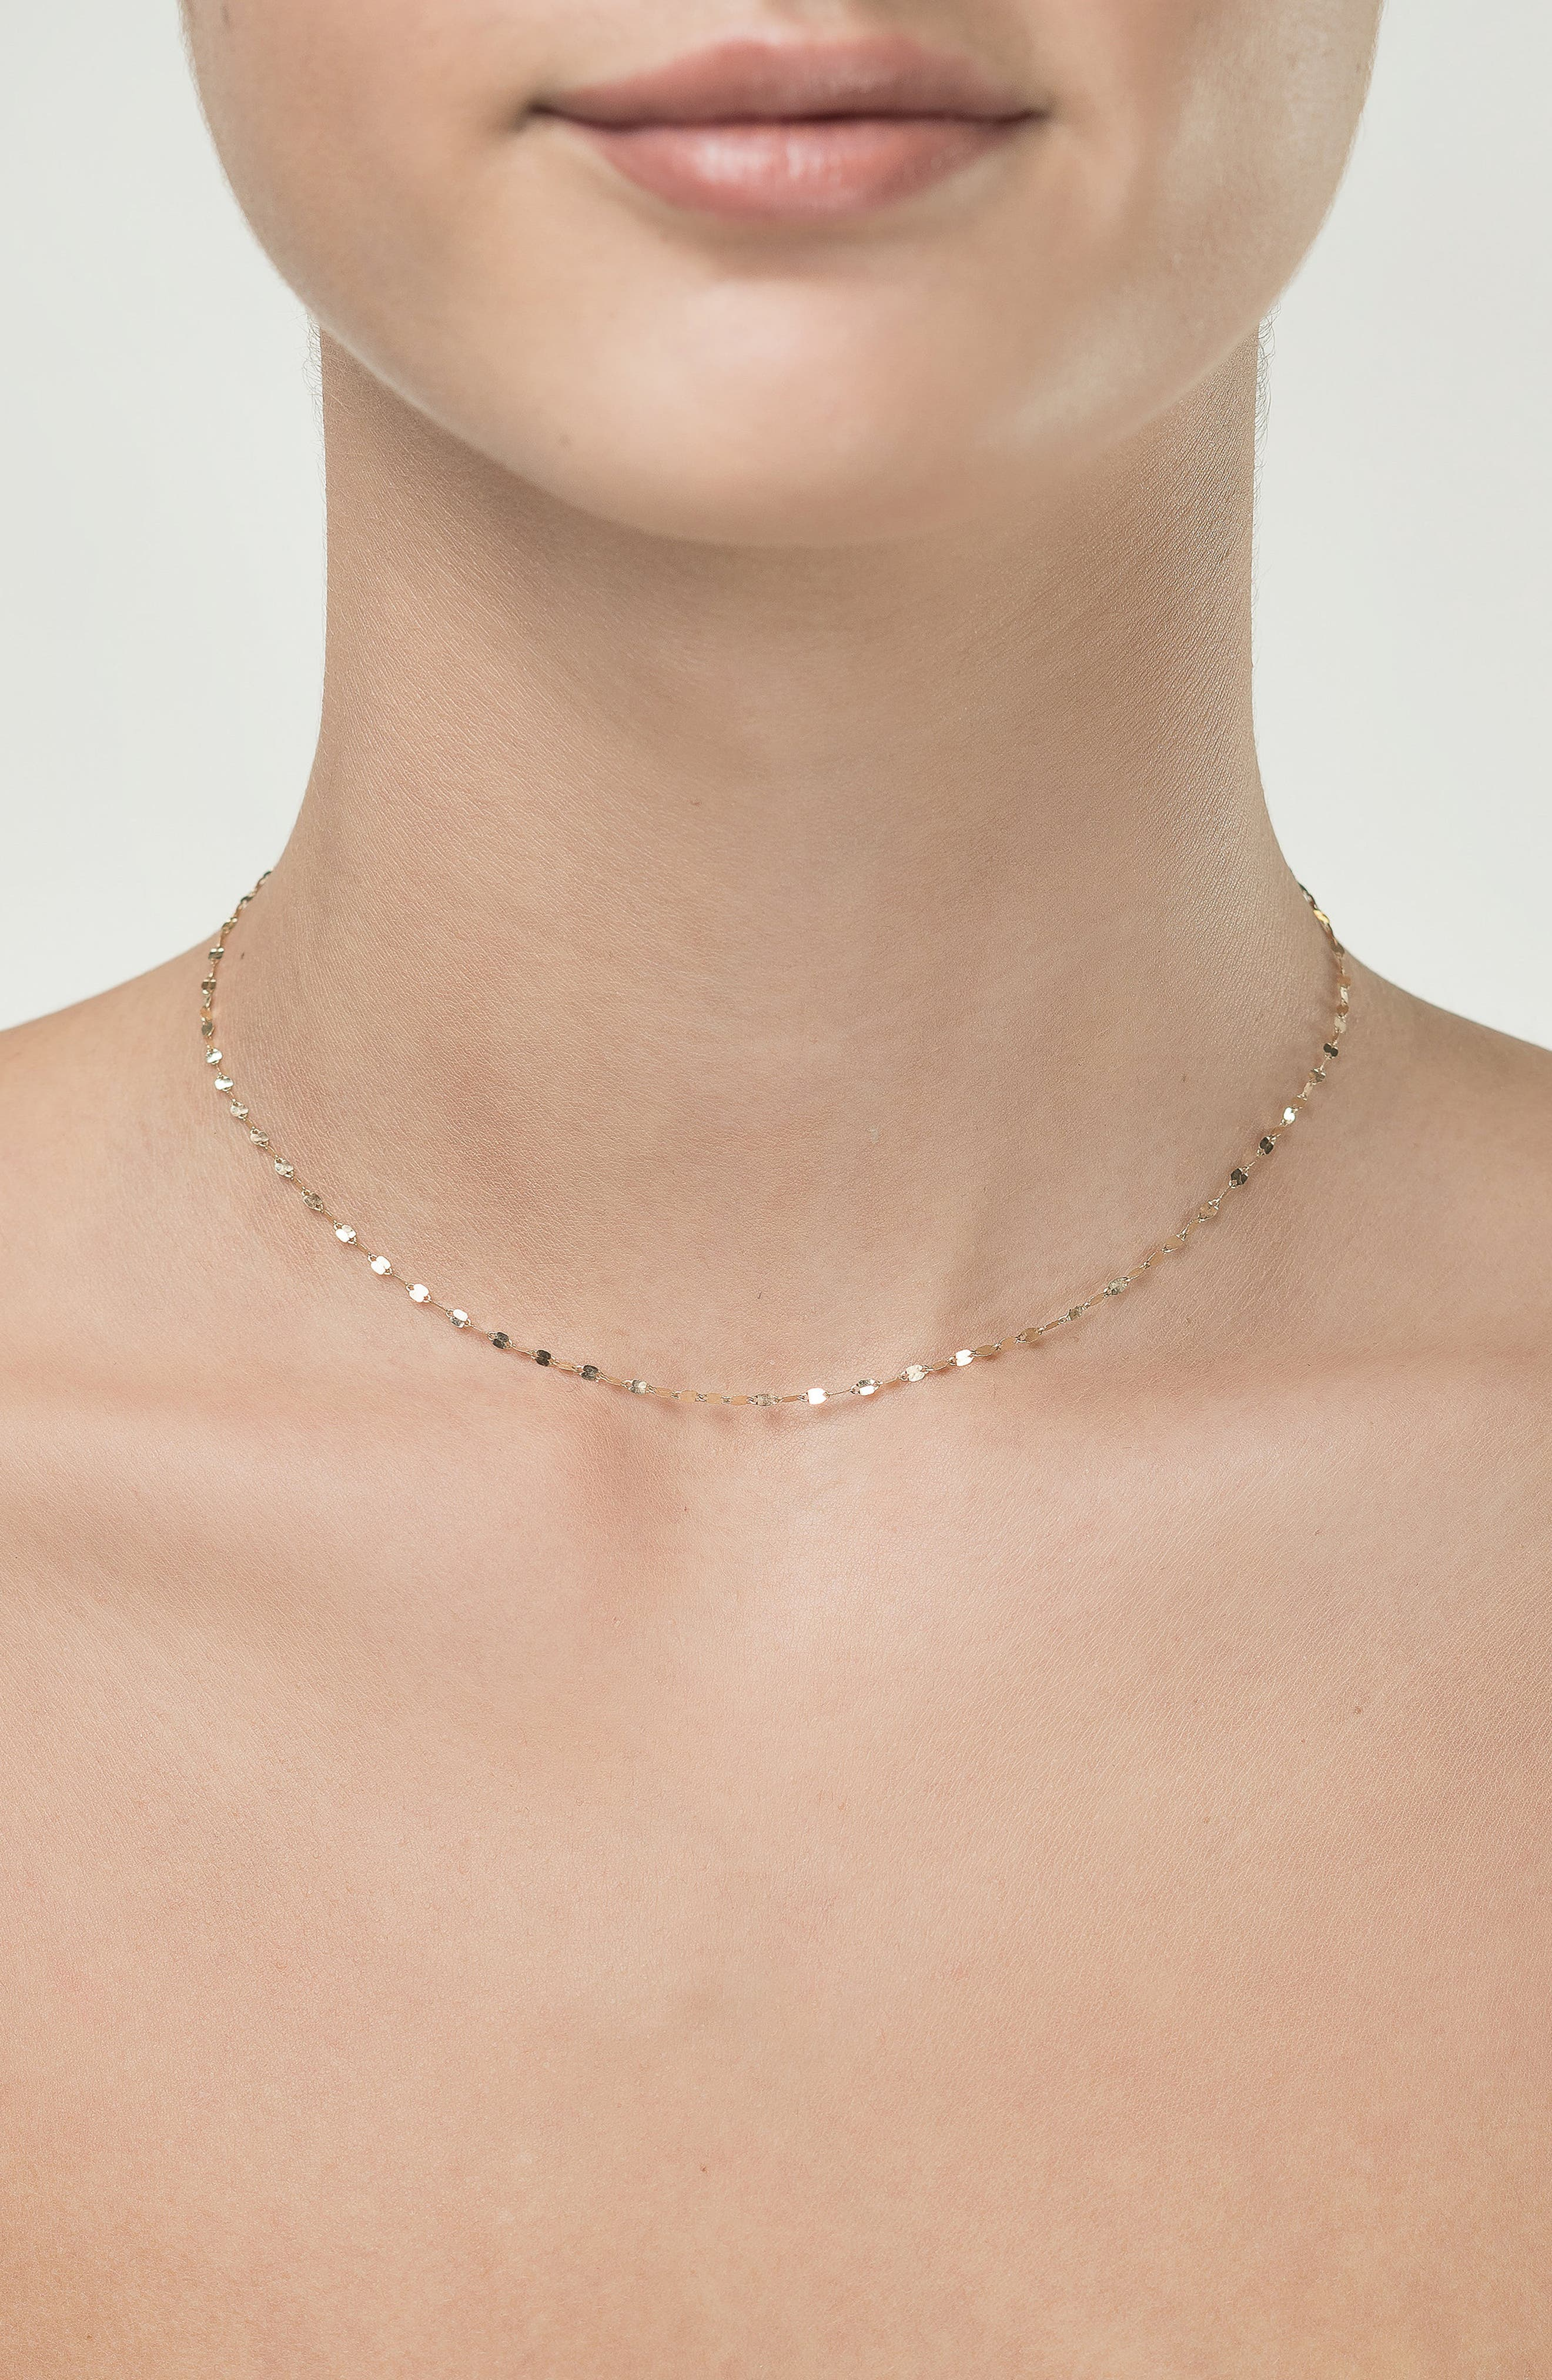 Blake Chain Choker Necklace,                             Alternate thumbnail 2, color,                             Yellow Gold